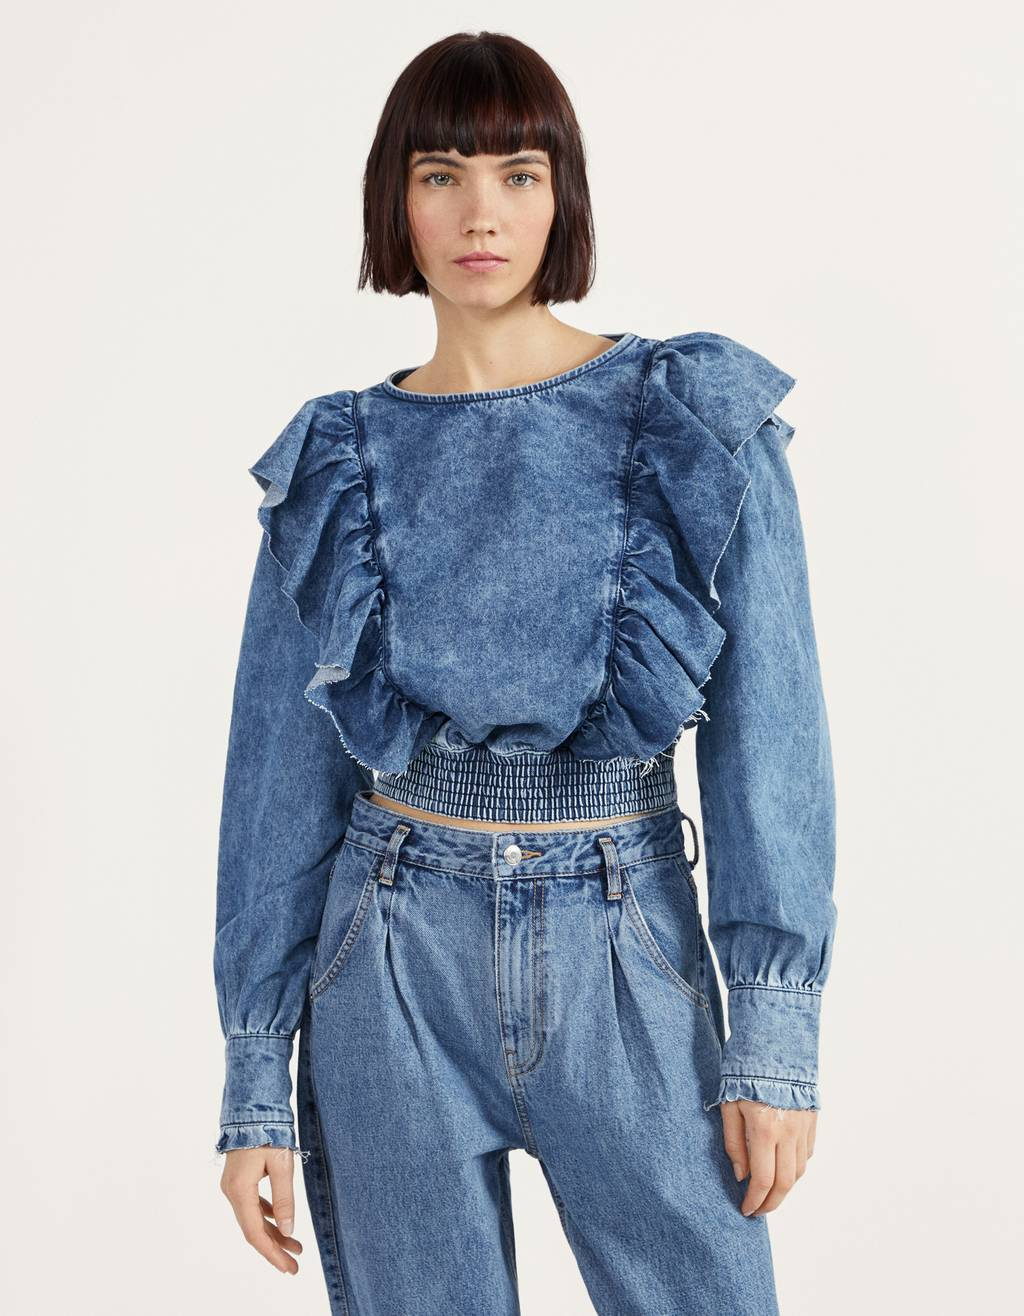 Blouse en jean à volants et smocks